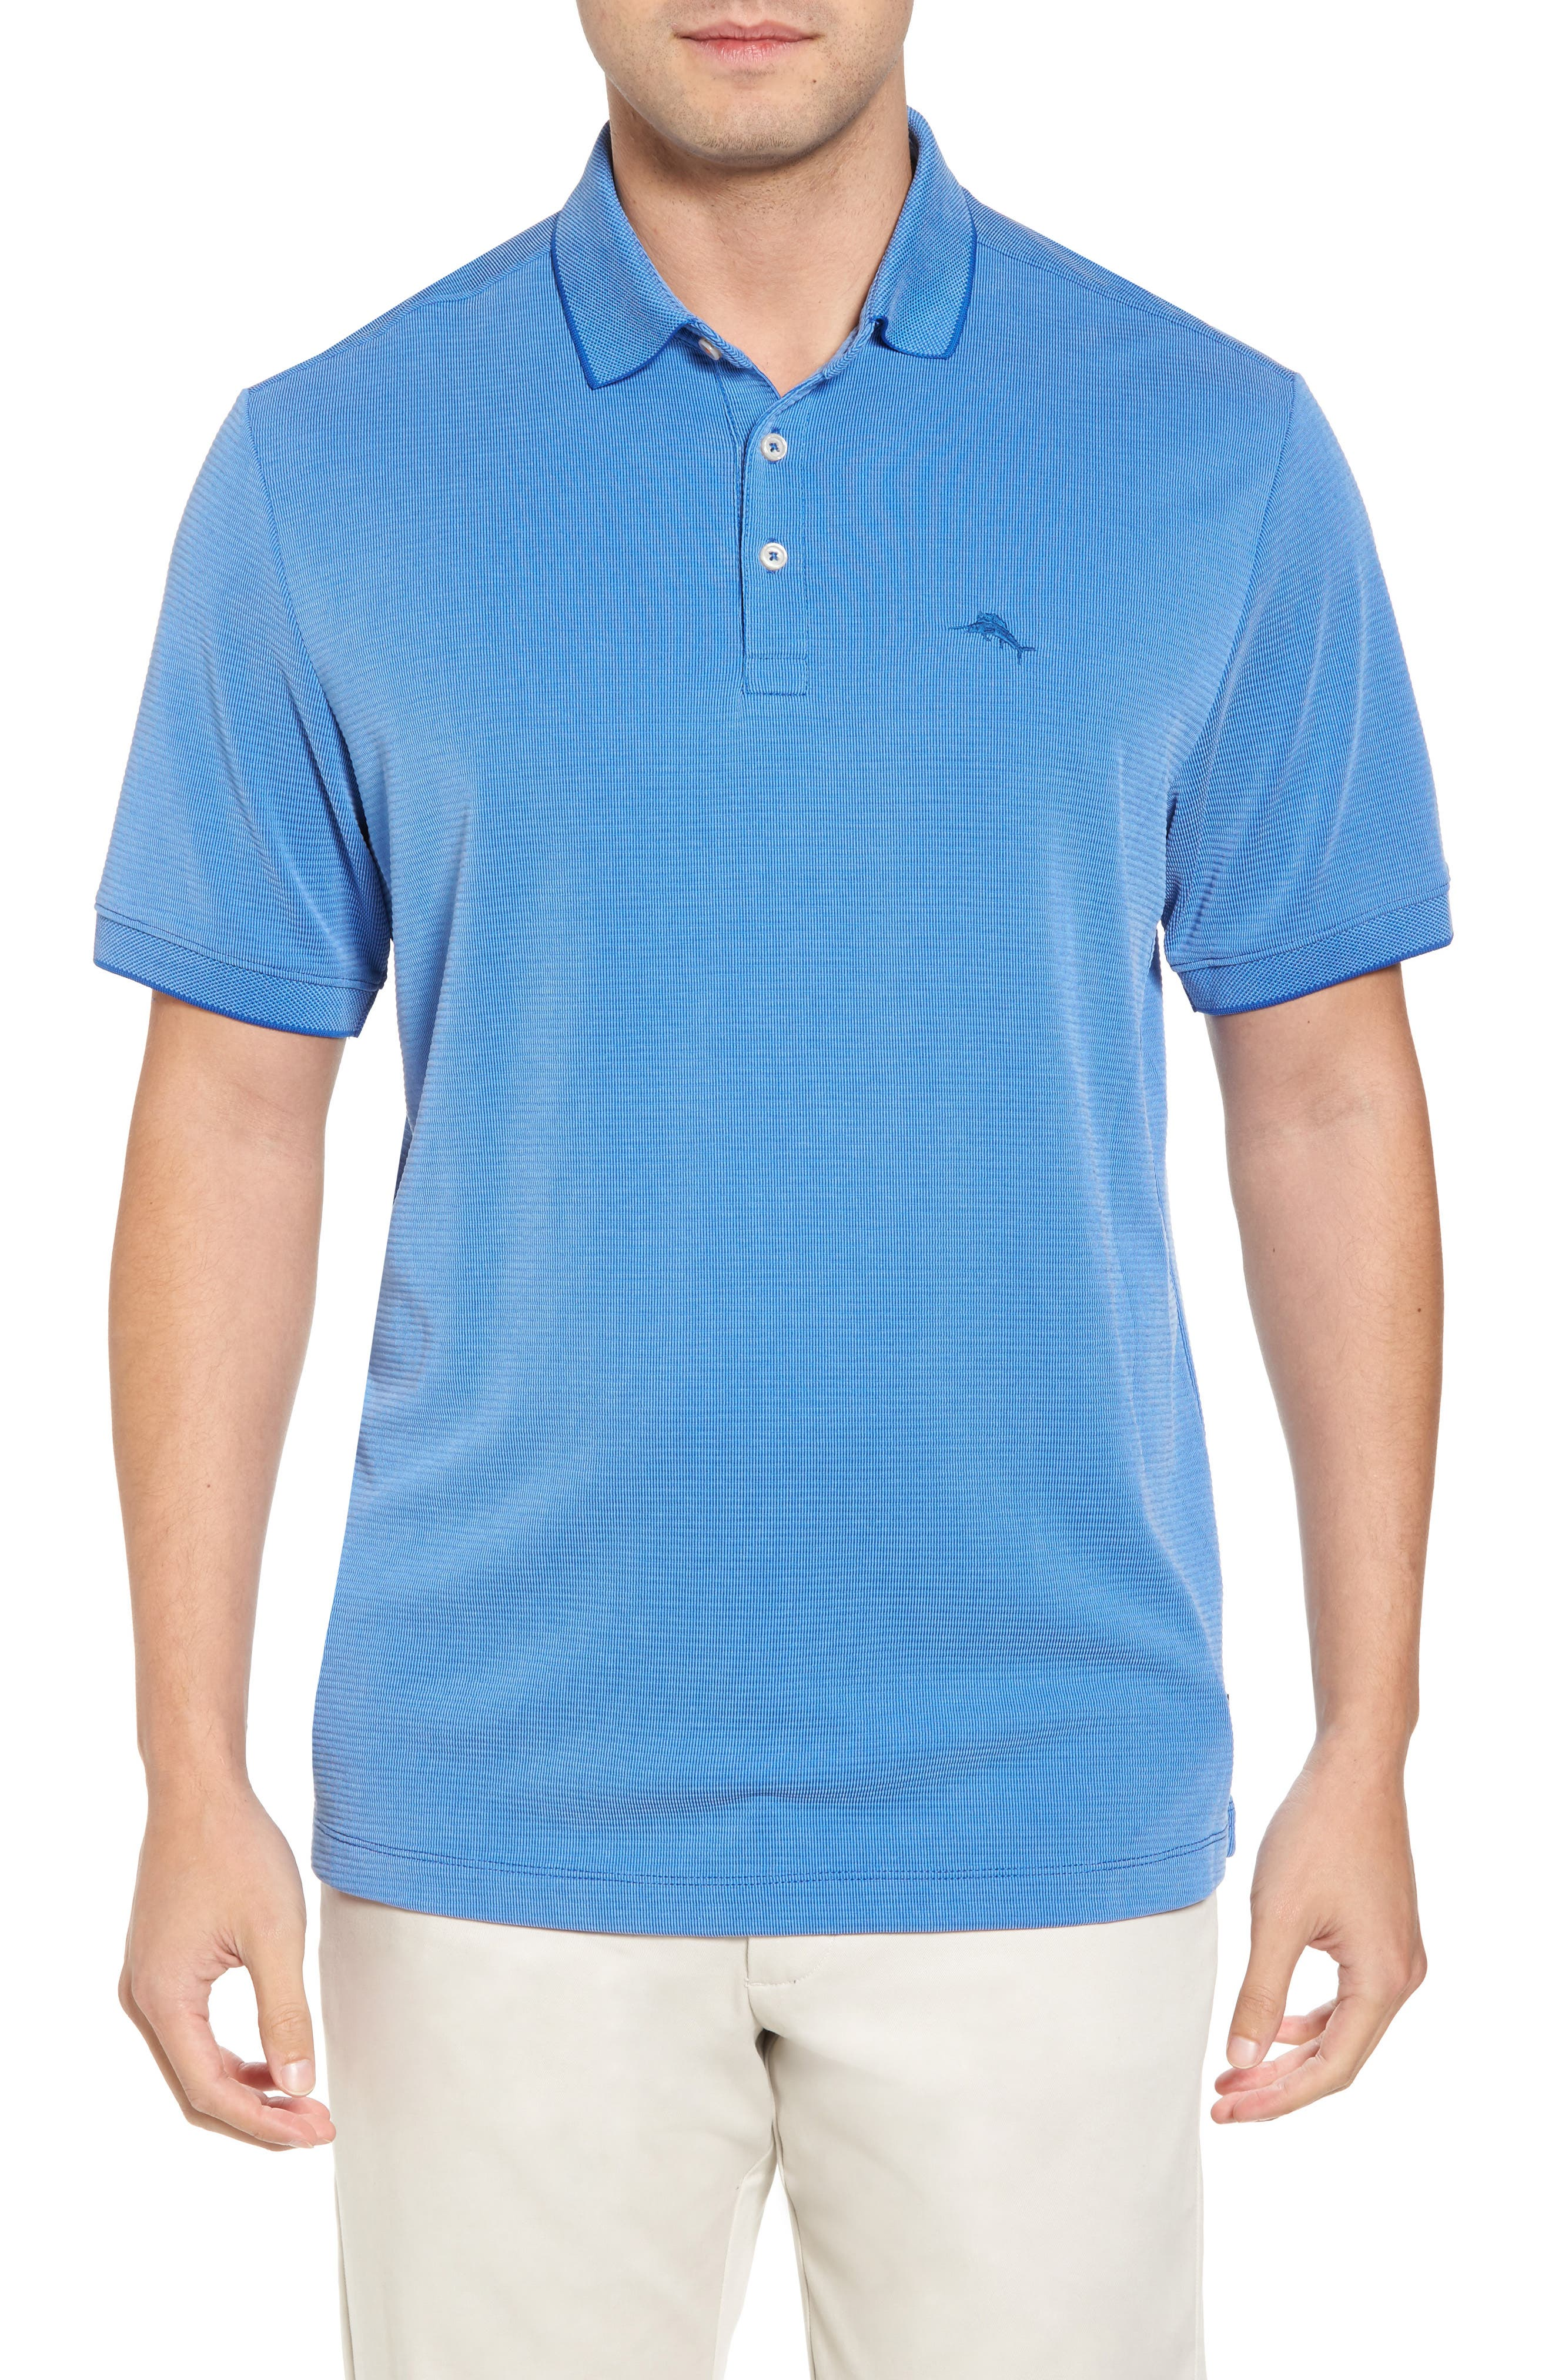 Alternate Image 1 Selected - Tommy Bahama Coastal Crest Polo